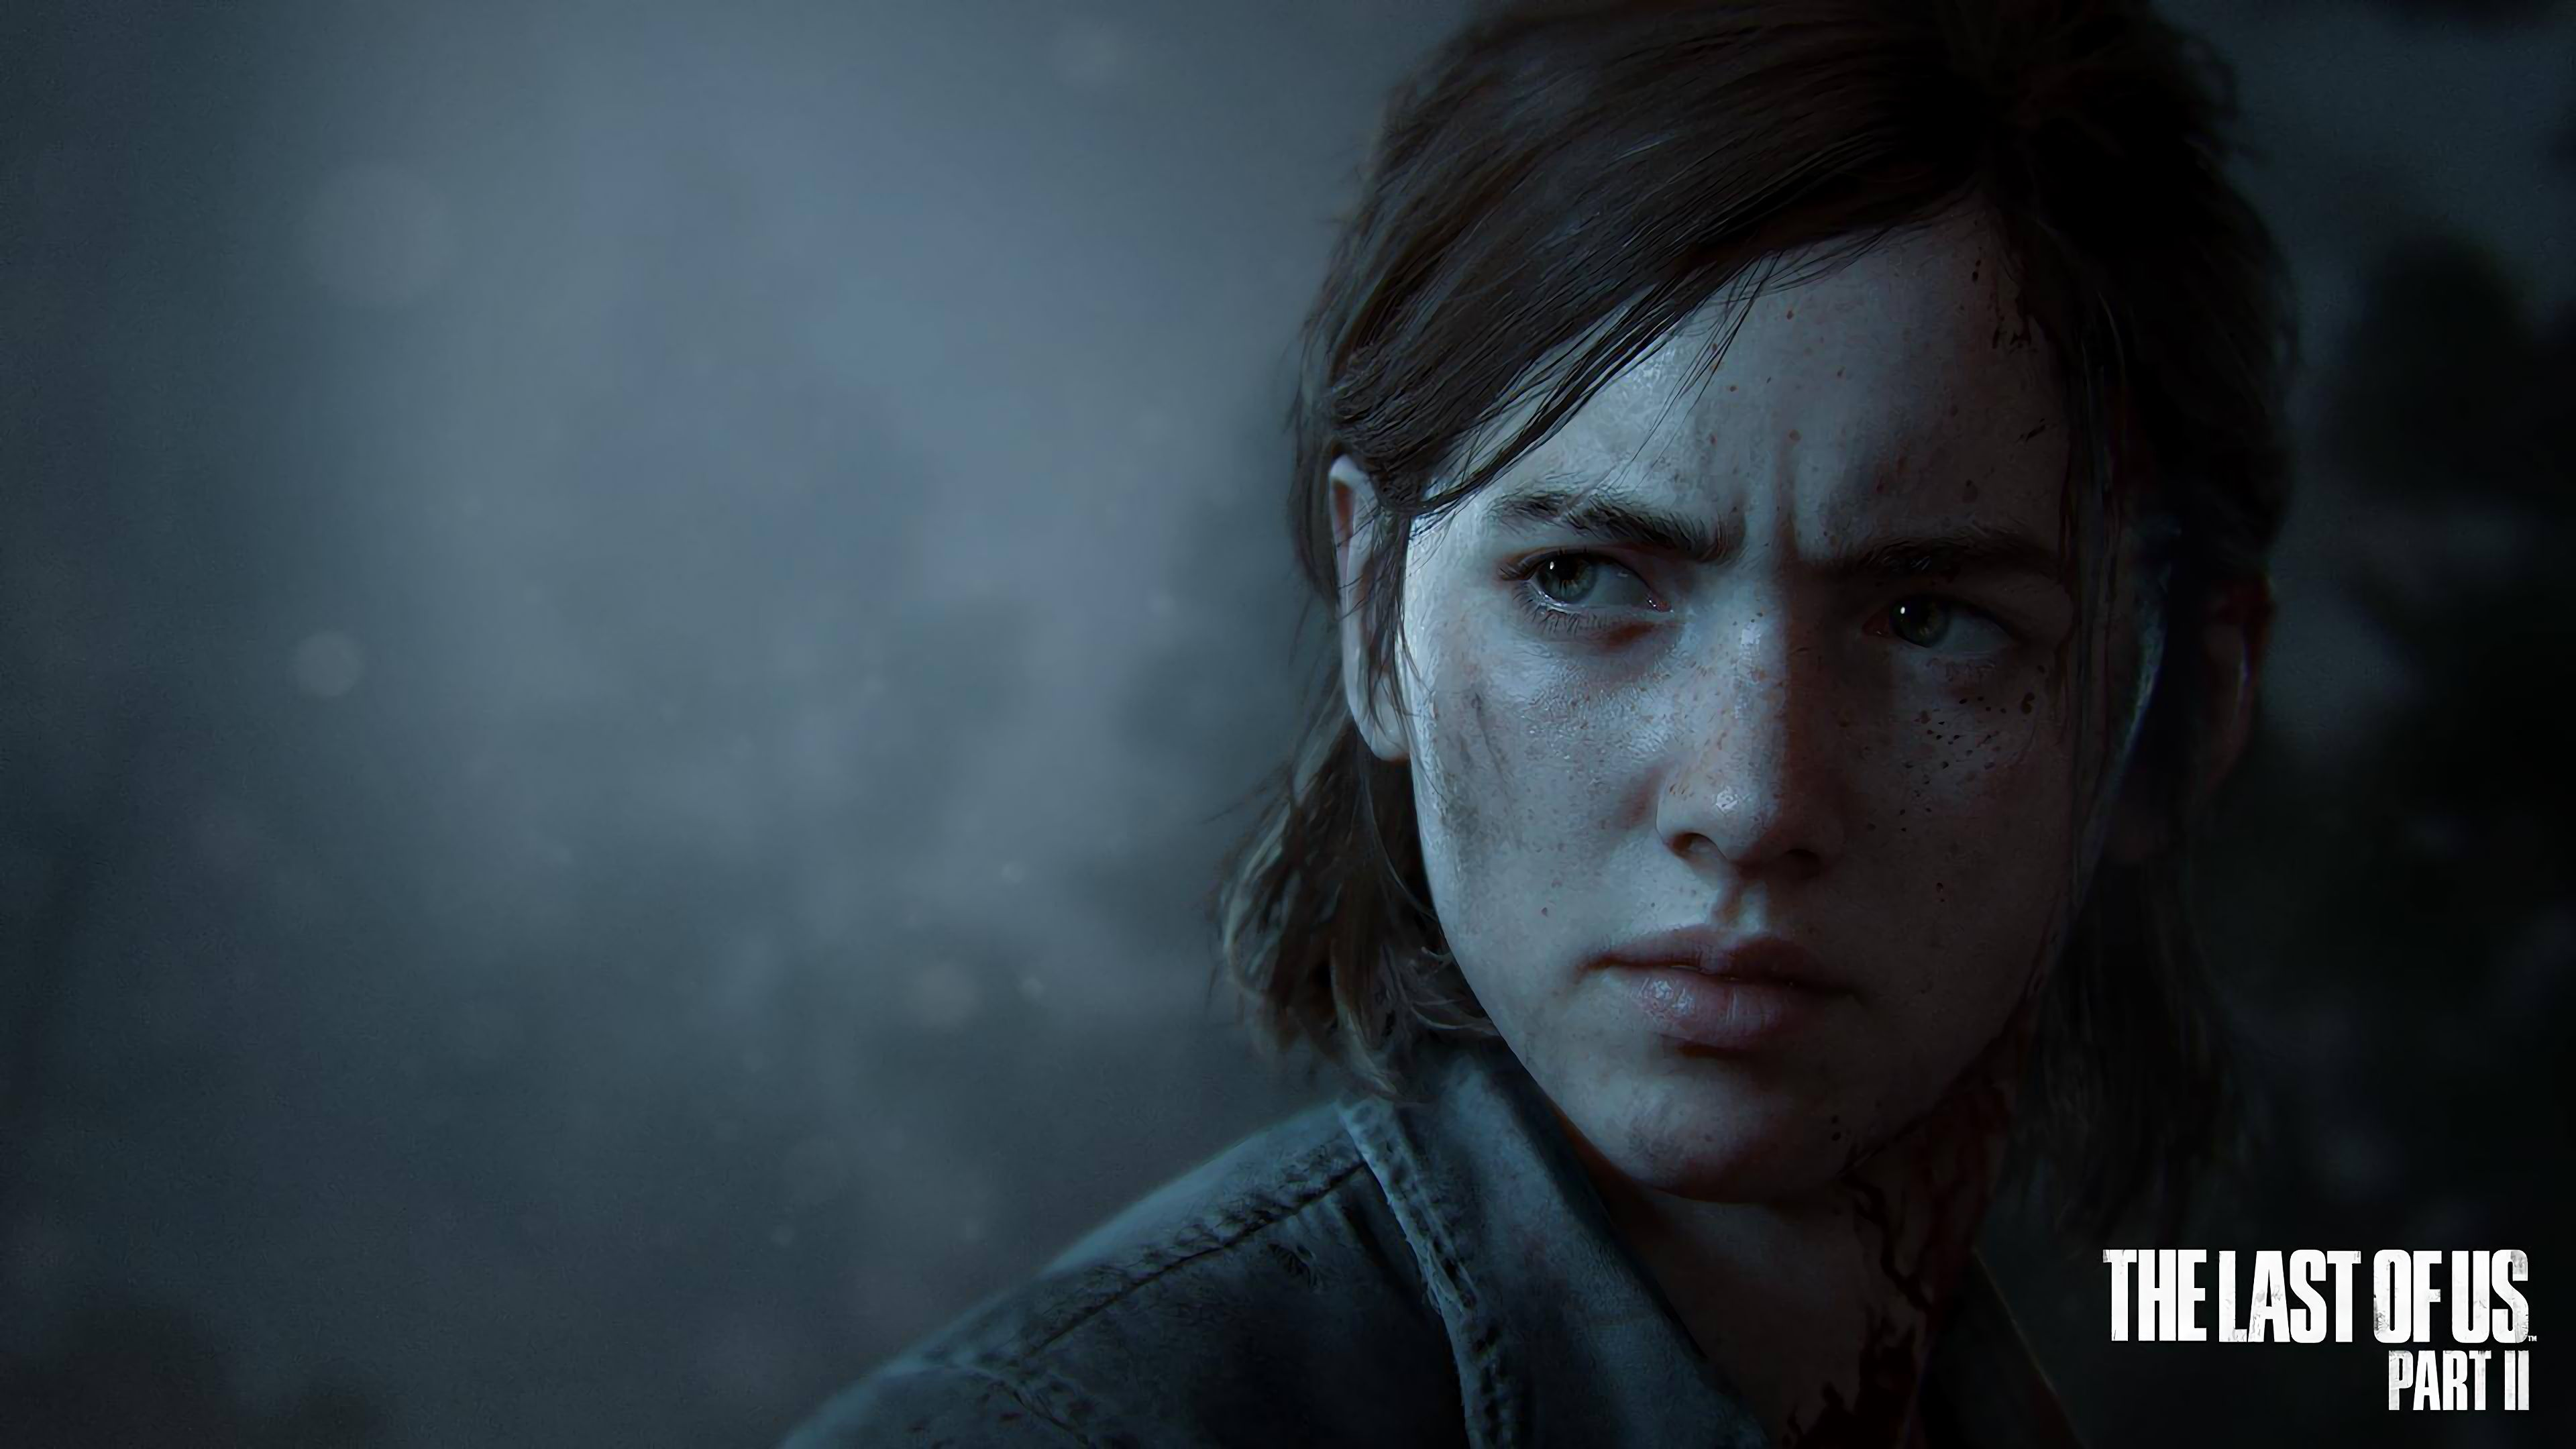 Fondo de pantalla de The Last of Us 3840x2160